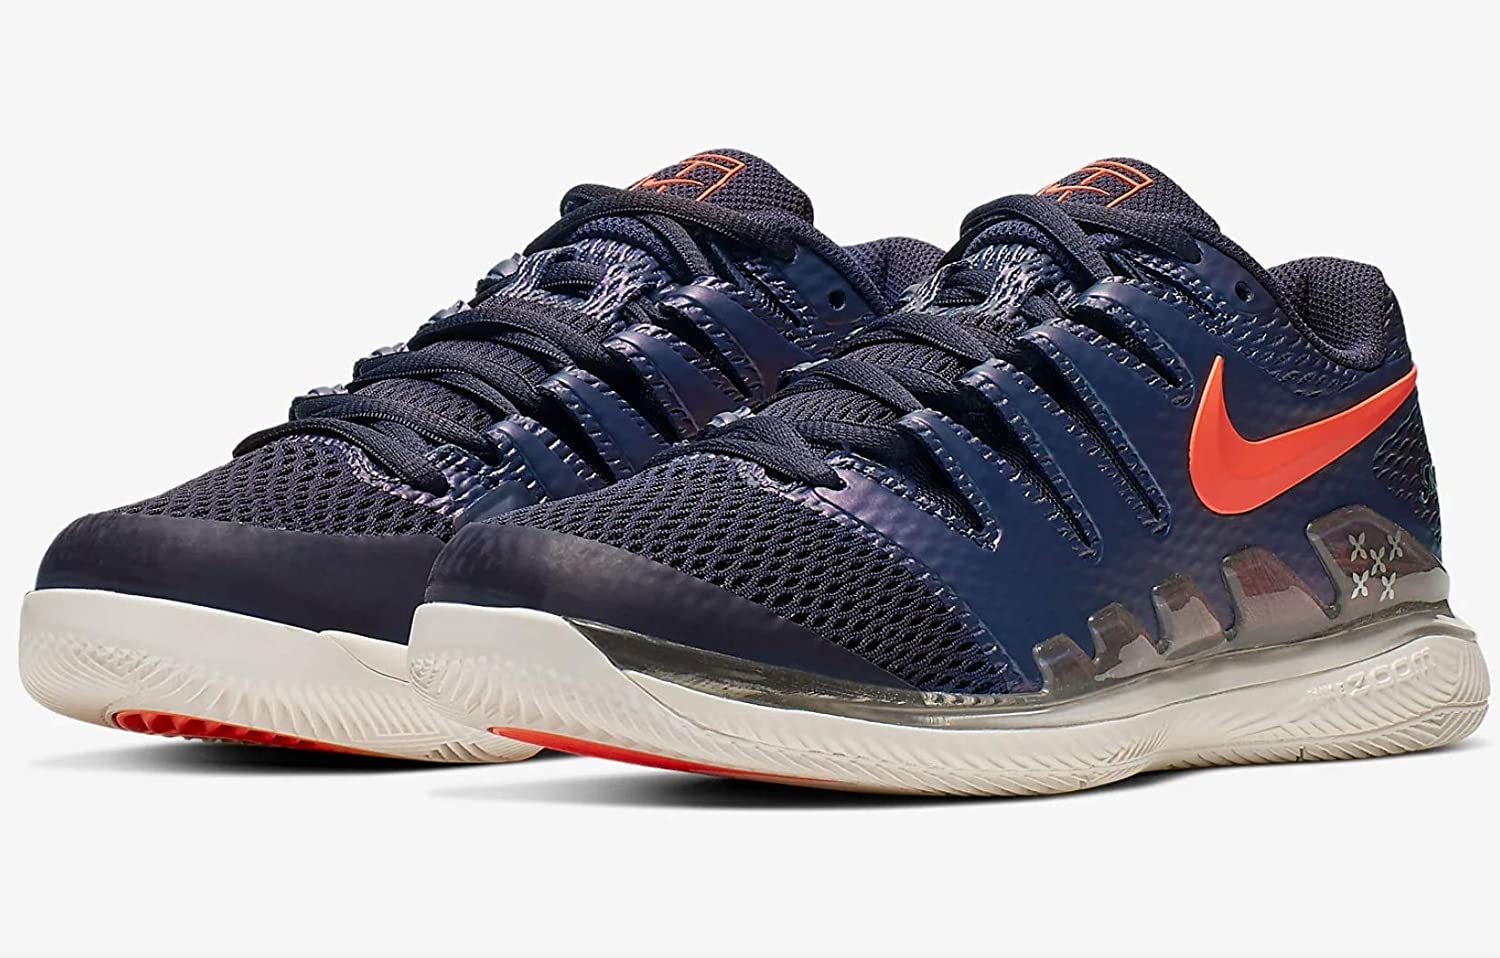 Nike Air Zoom Tennis Shoes for Women